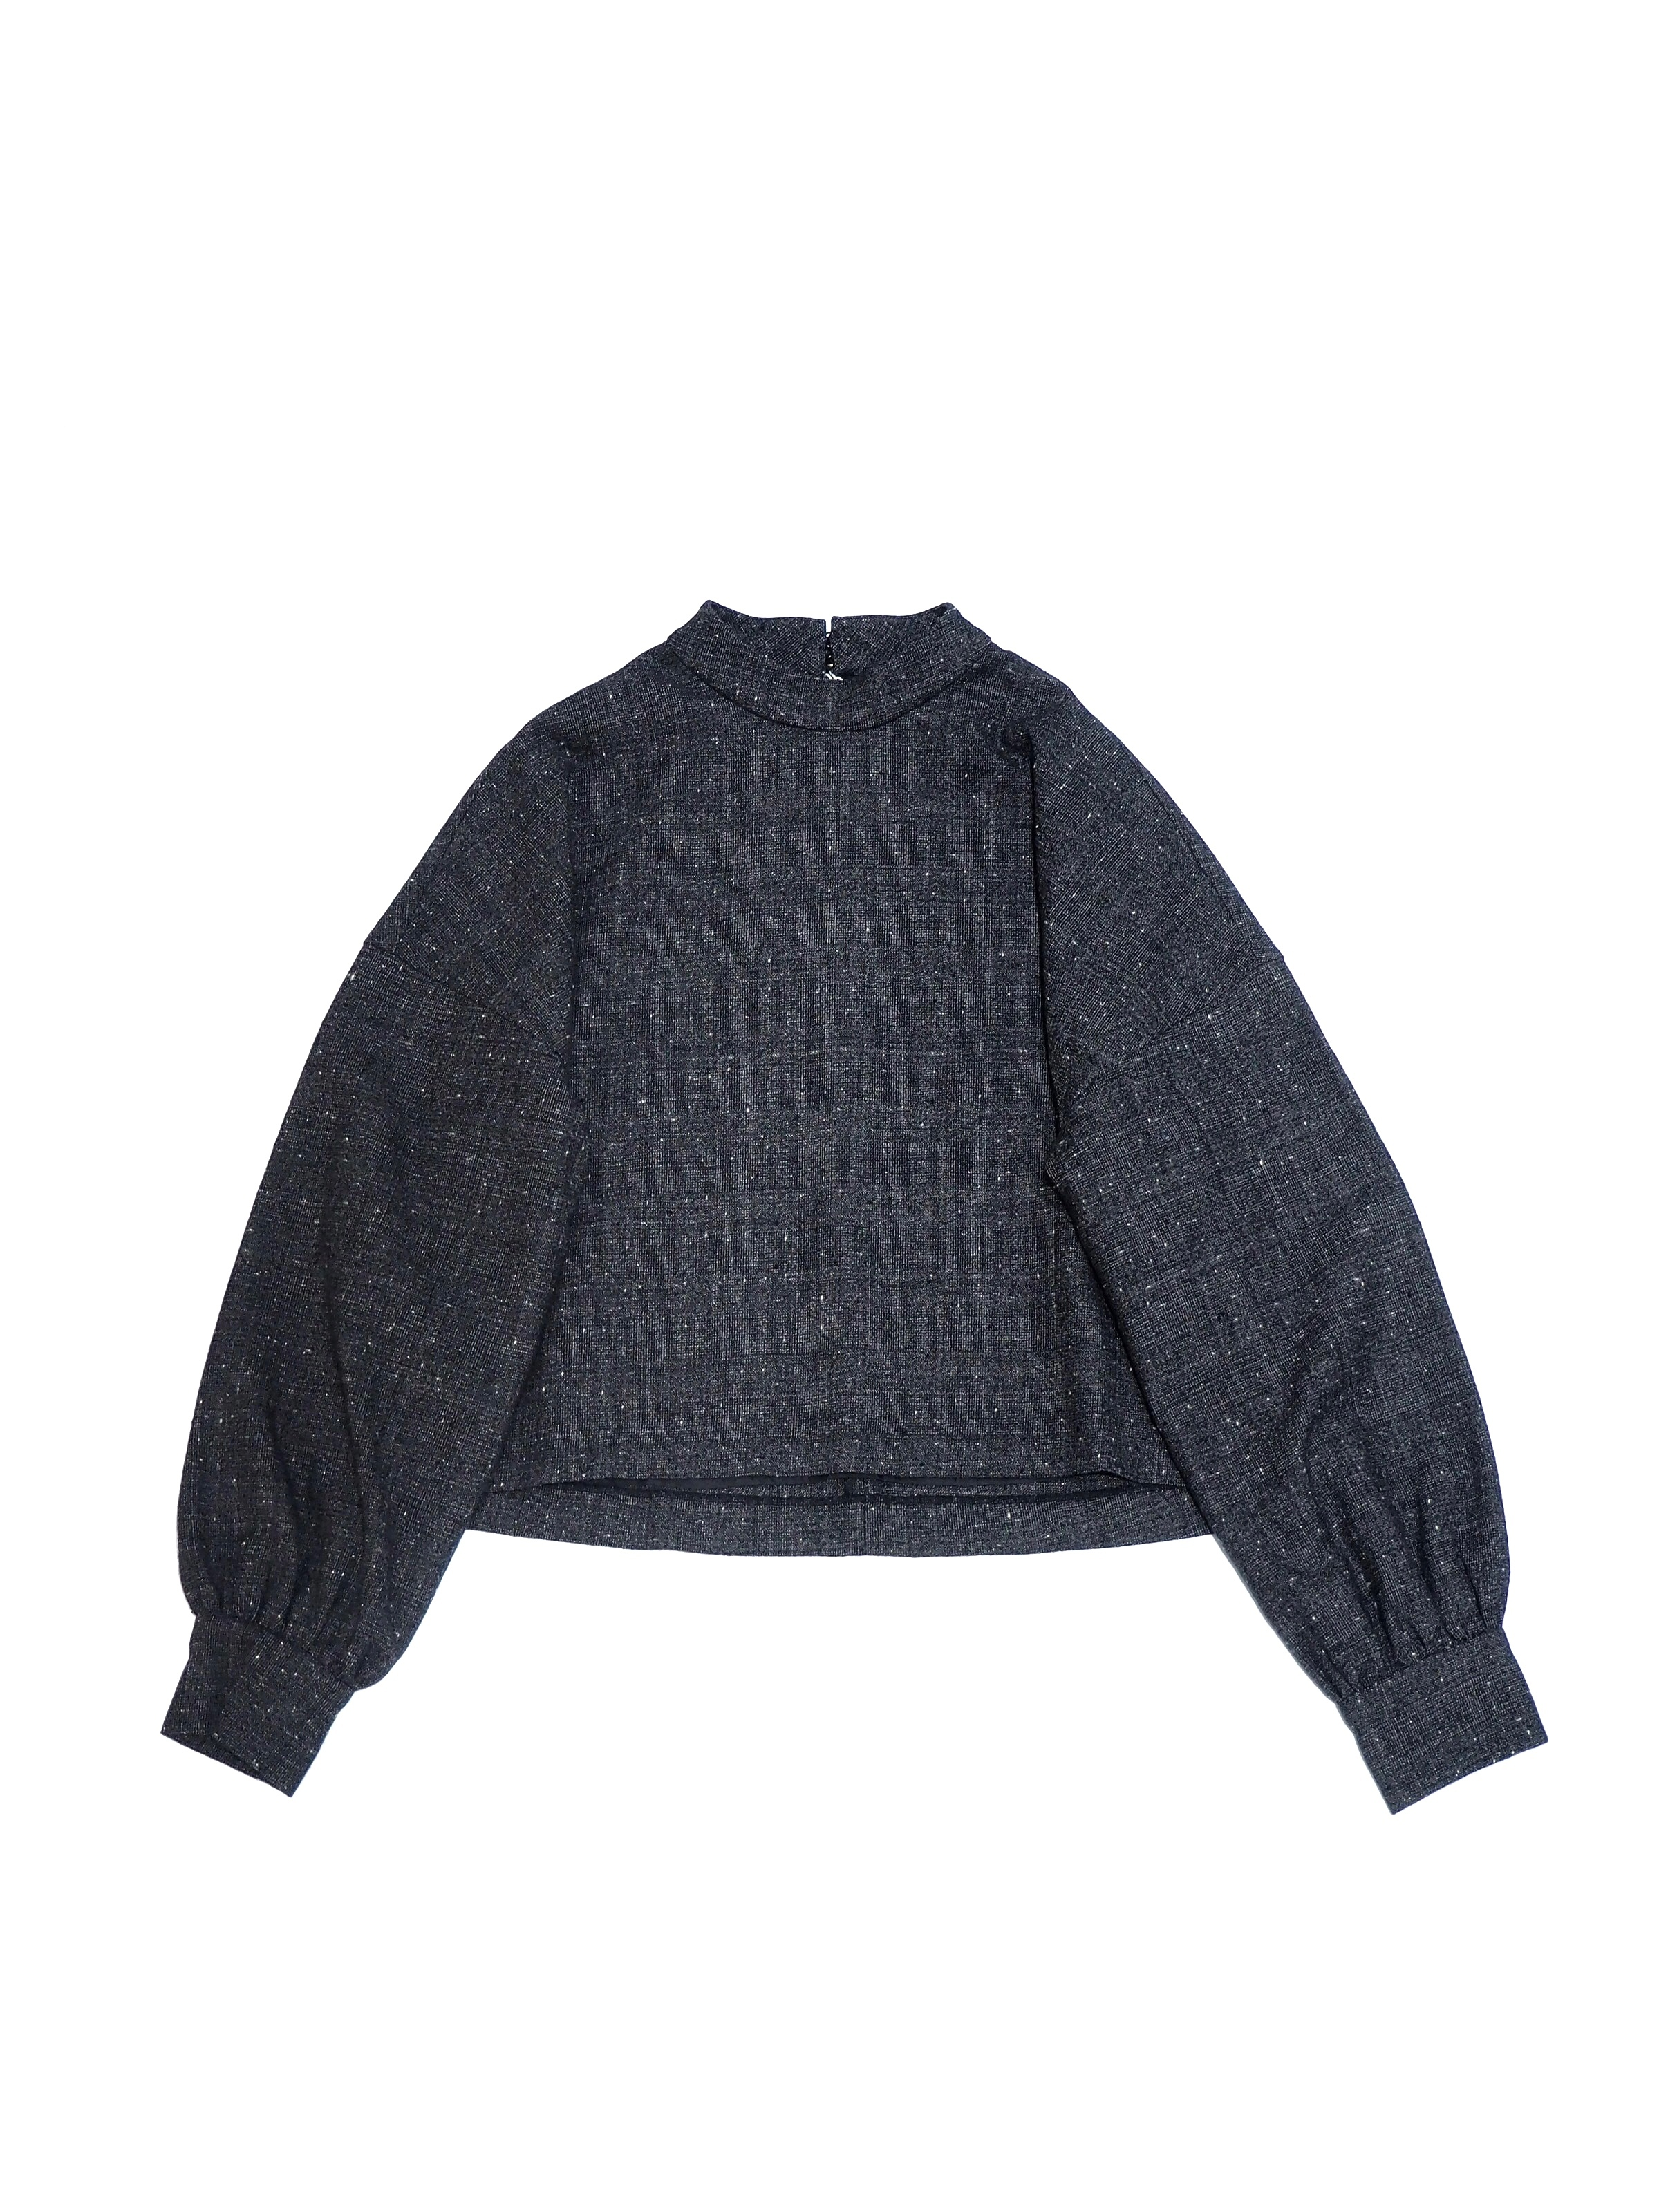 【ENLIGHTENMENT】NEPTWEED PULLOVER